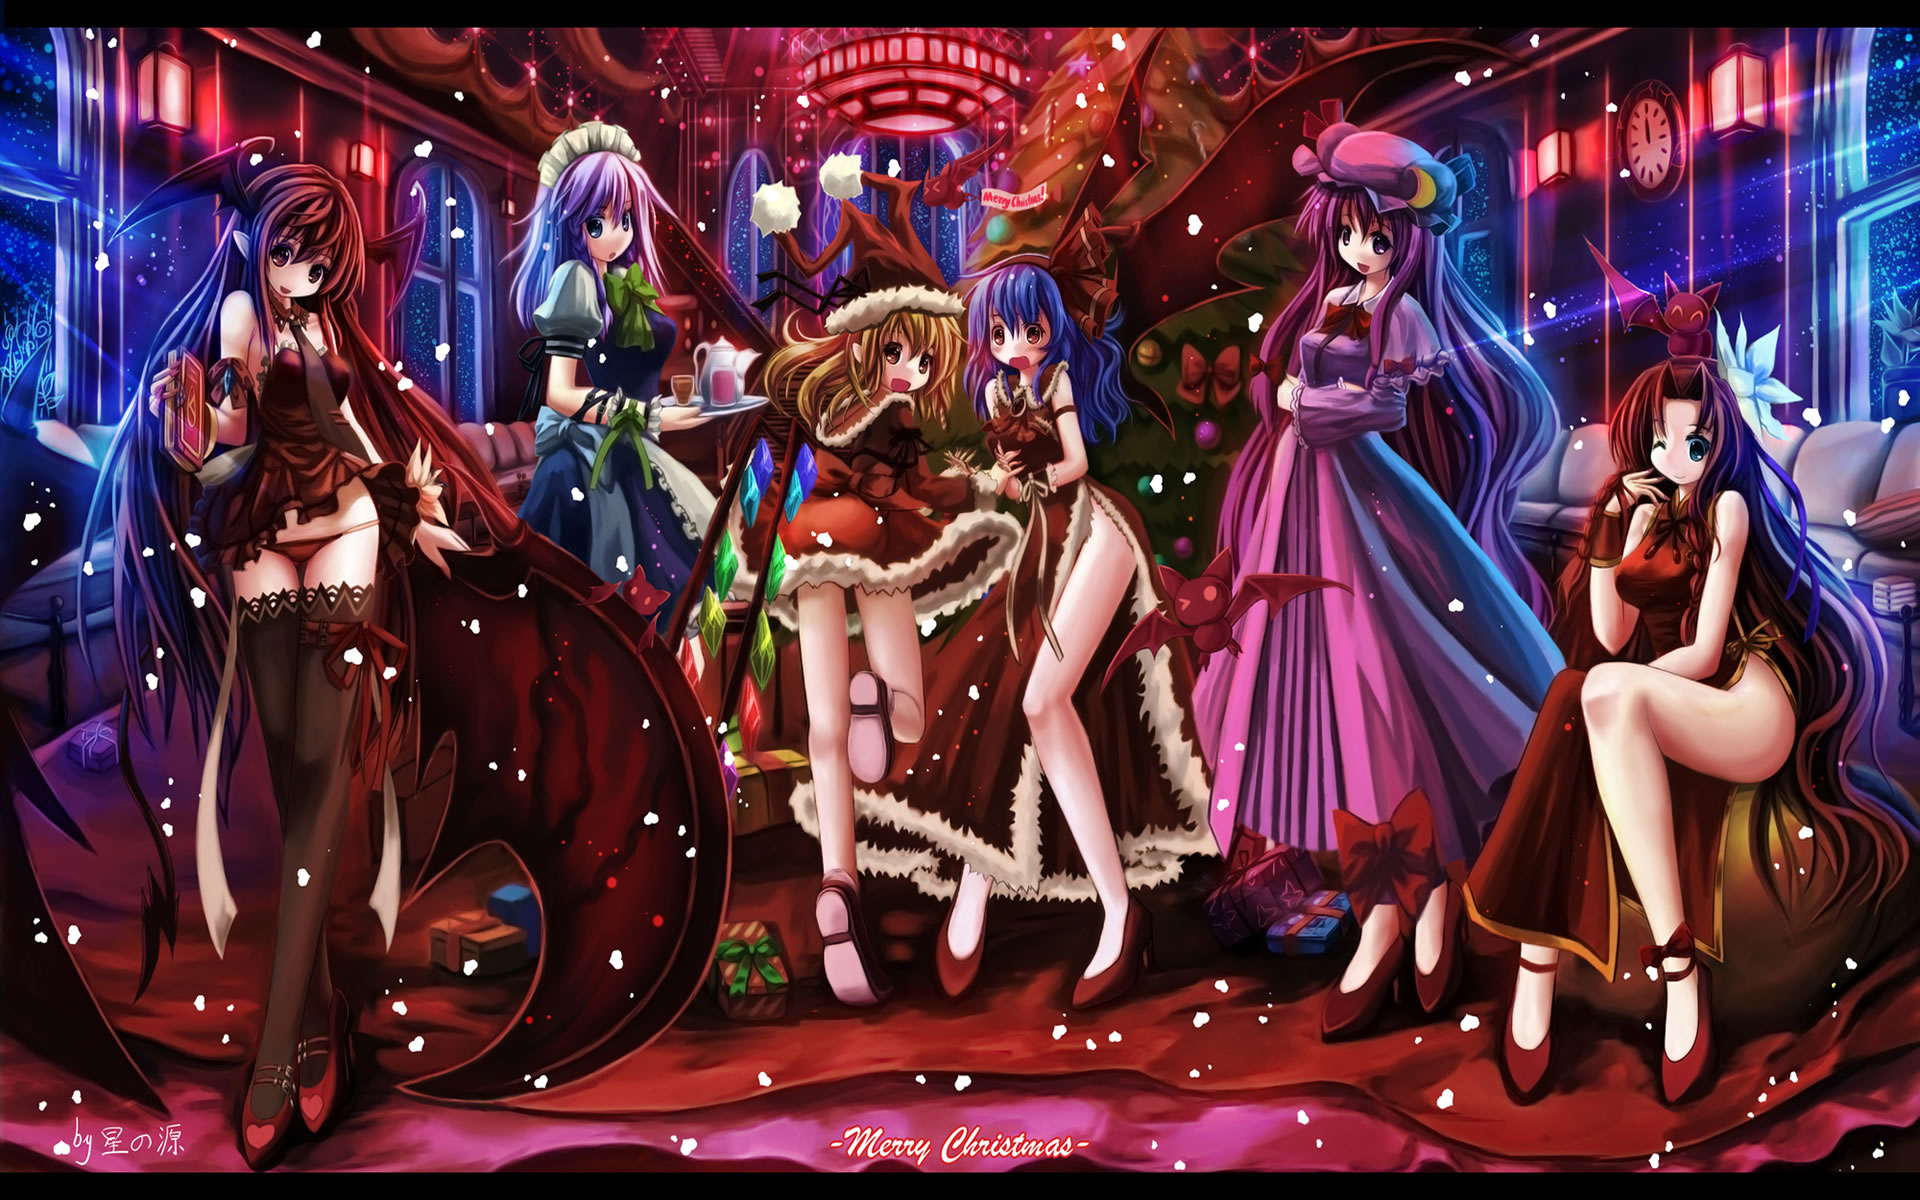 Merry christmas anime wallpapers - Anime merry christmas wallpaper ...